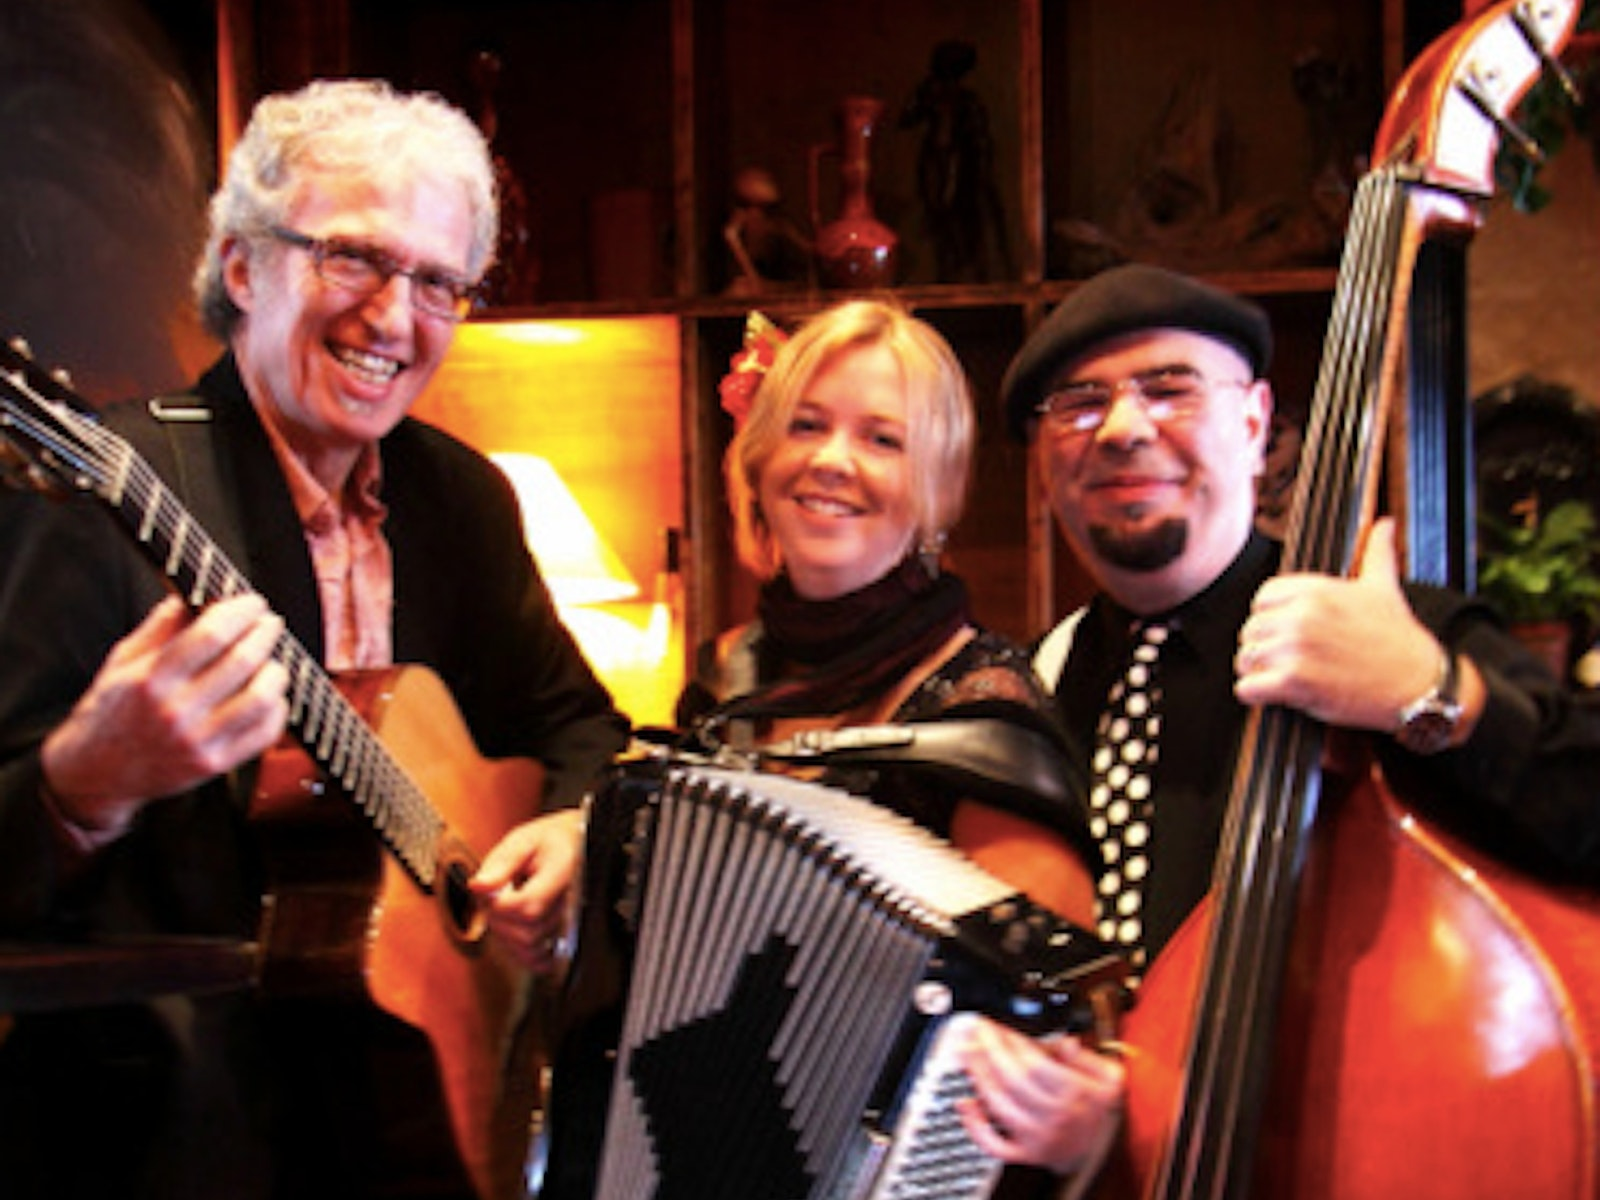 Belle Musette will play at 360Q's Bastille Dinner and Show. queenscliff